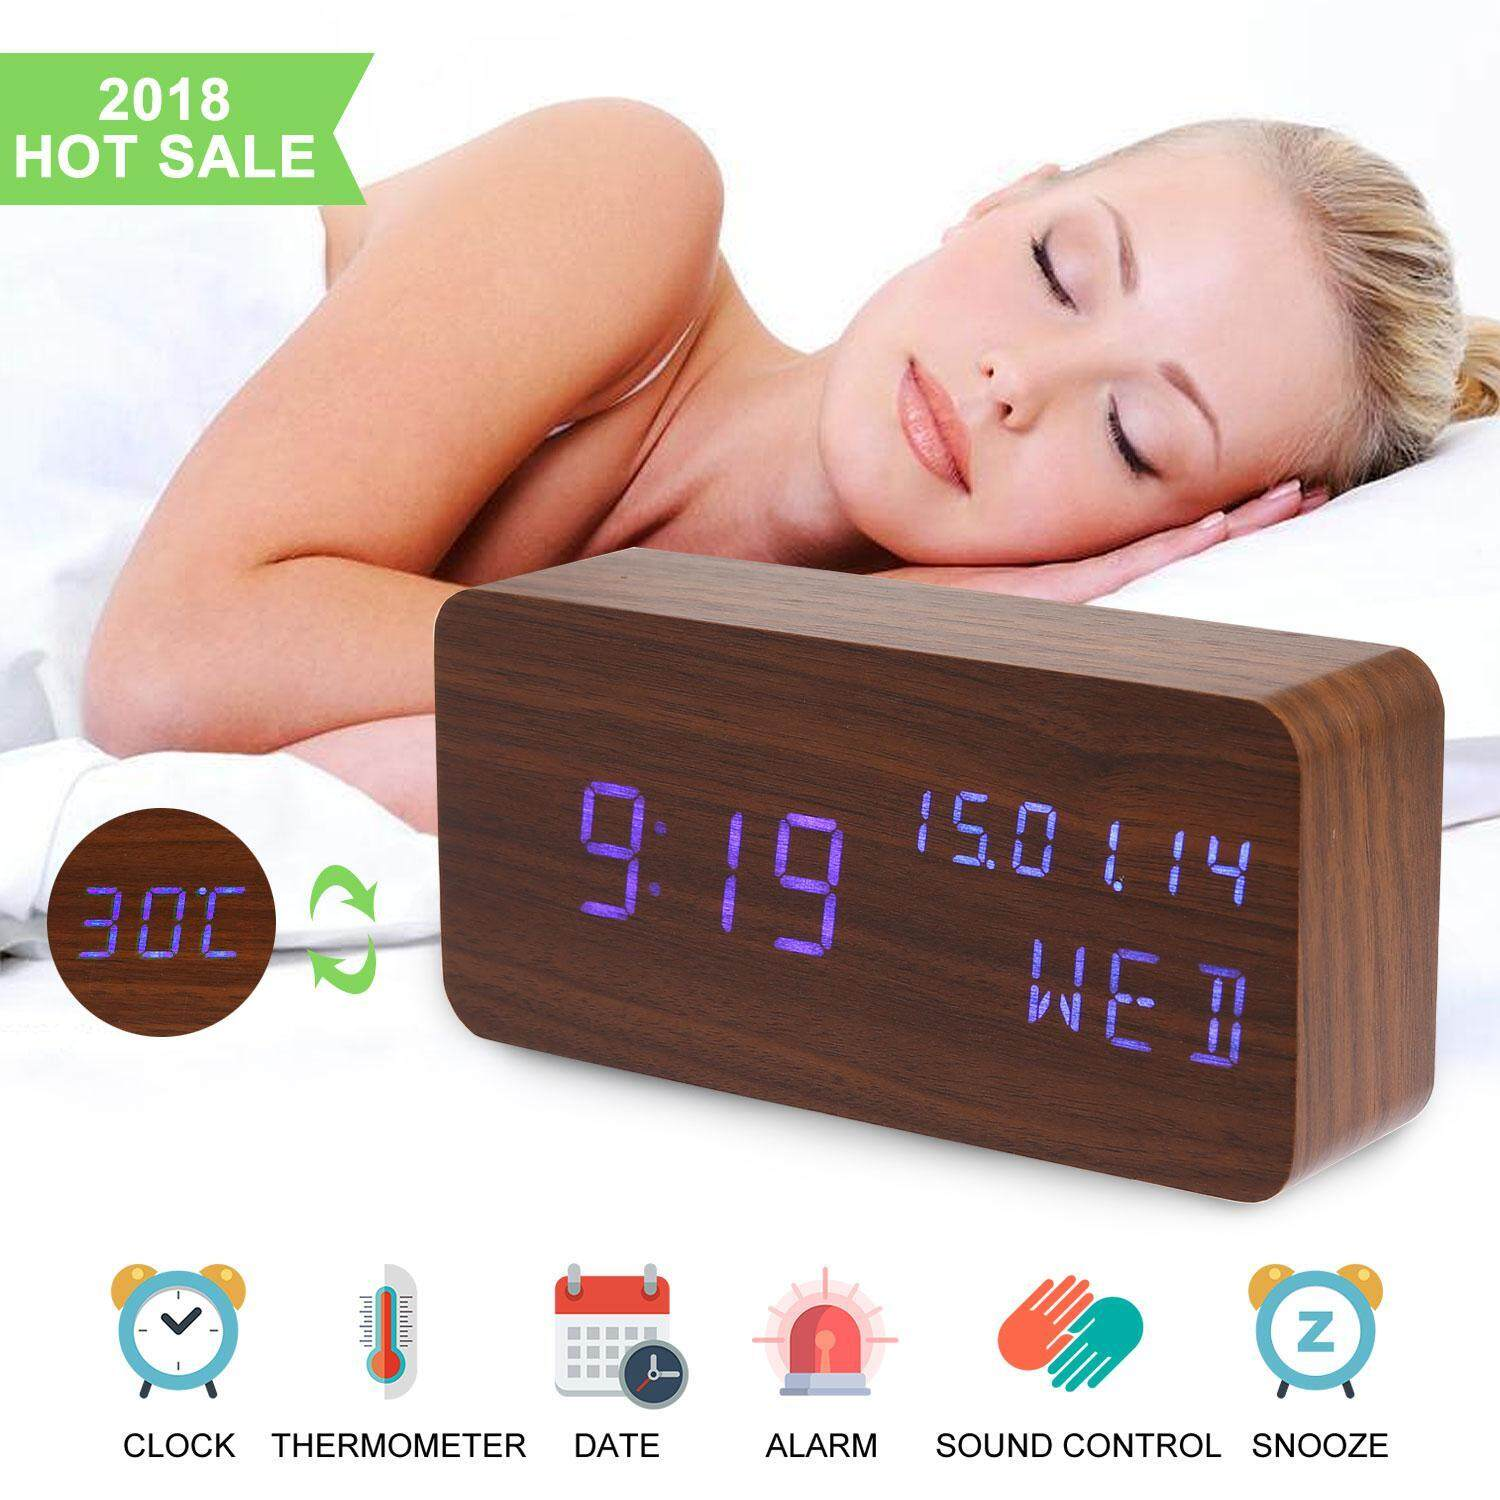 BuyBowie Alarm Clock,Wood Alarm Clock Voice Command Digital Clocks for Bedroom Beside LED Wooden Clock Small Alarm Clocks 3 Levels Brightness 3 Alarms Desk Clock Show Time Date Week Temperature for Office Home